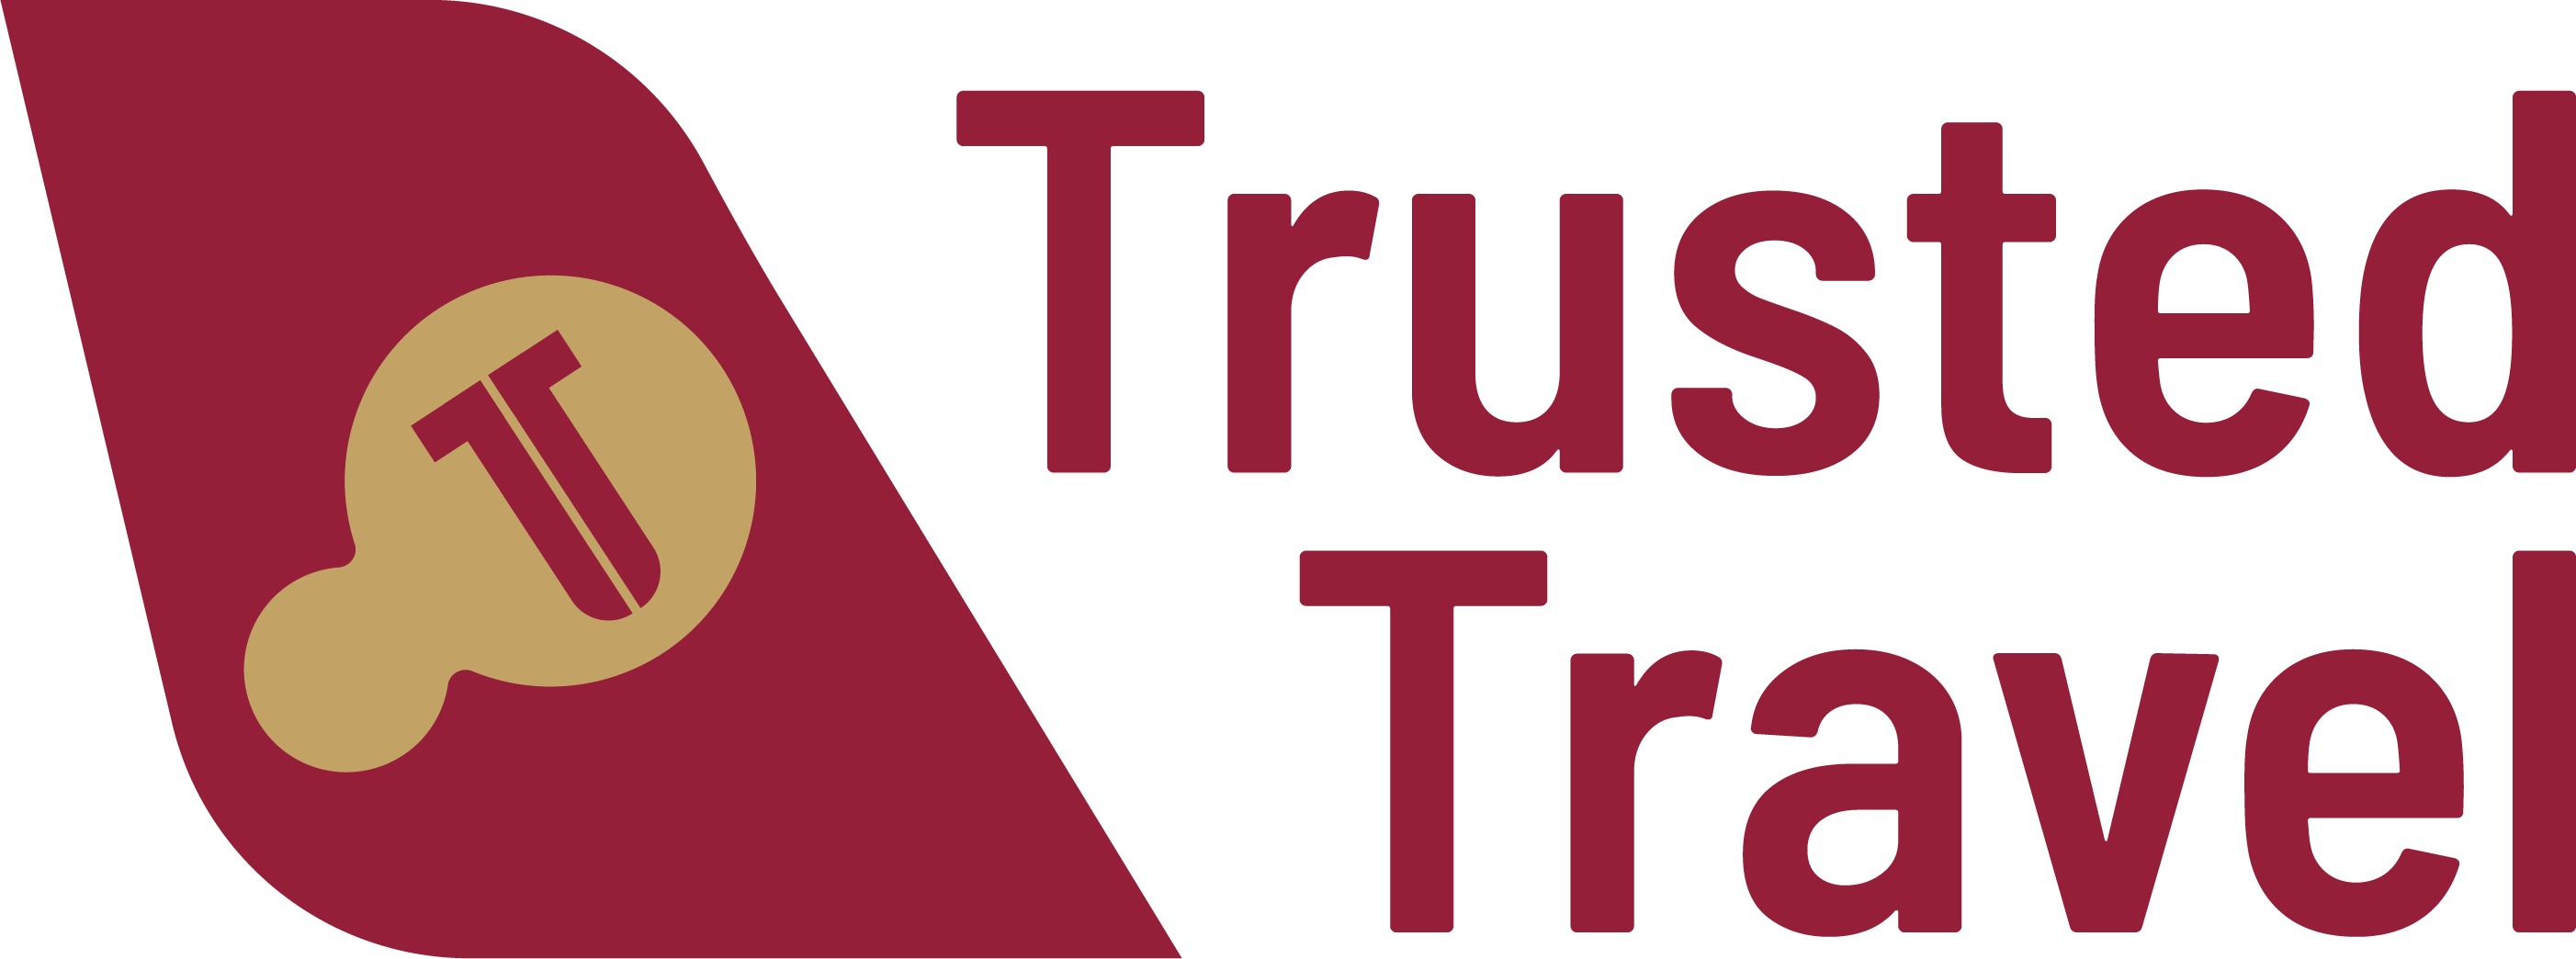 trusted travel logo - generic